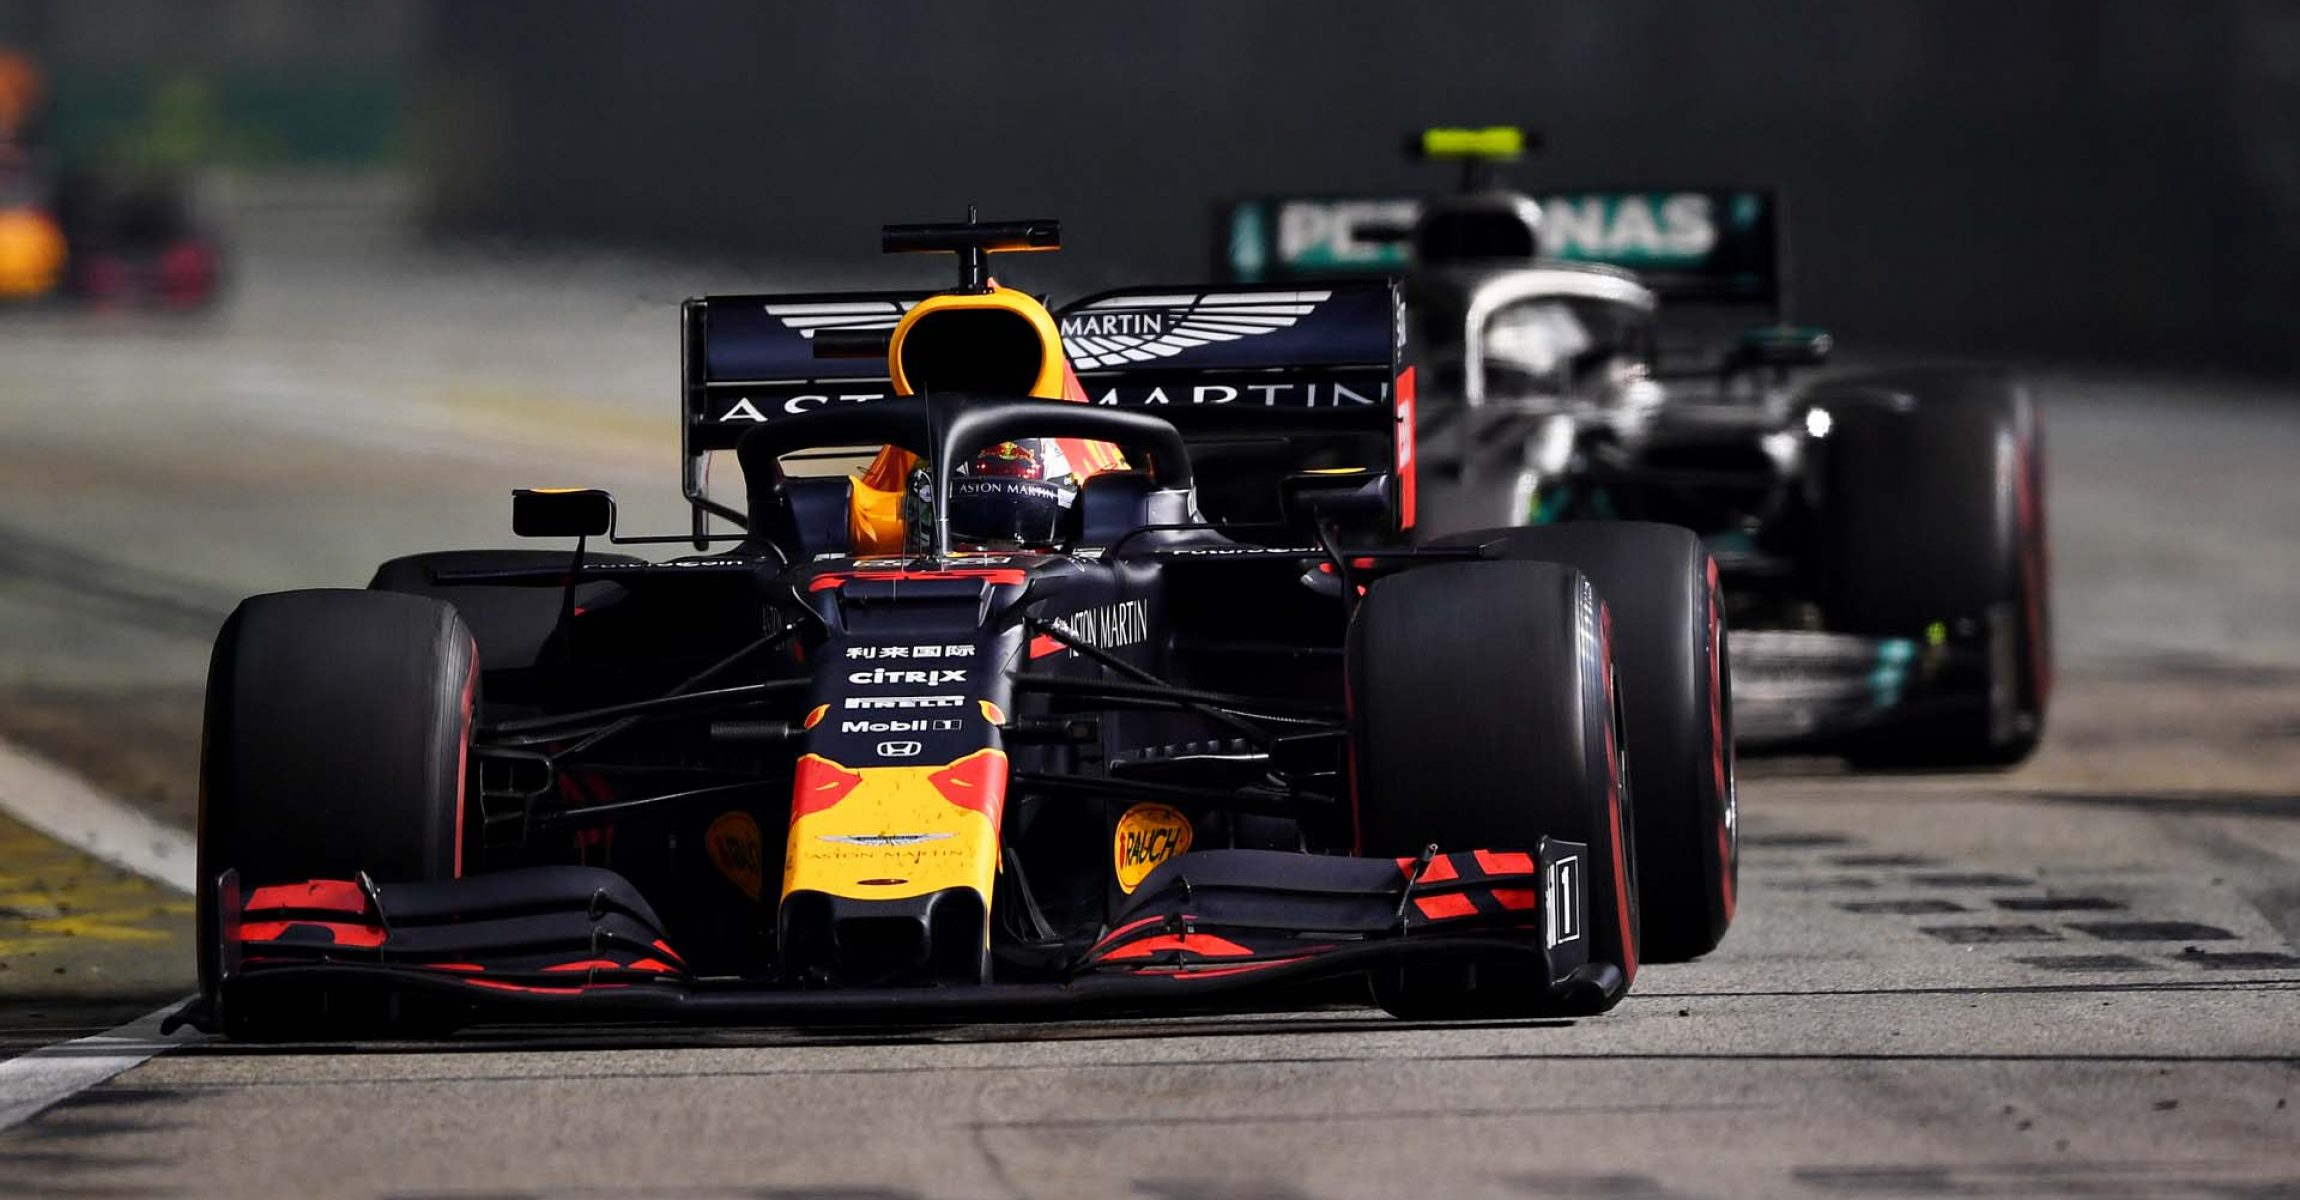 SINGAPORE, SINGAPORE - SEPTEMBER 22: Max Verstappen of the Netherlands driving the (33) Aston Martin Red Bull Racing RB15 leads Valtteri Bottas driving the (77) Mercedes AMG Petronas F1 Team Mercedes W10 on track during the F1 Grand Prix of Singapore at Marina Bay Street Circuit on September 22, 2019 in Singapore. (Photo by Clive Mason/Getty Images) // Getty Images / Red Bull Content Pool  // AP-21NA3RX8D1W11 // Usage for editorial use only //